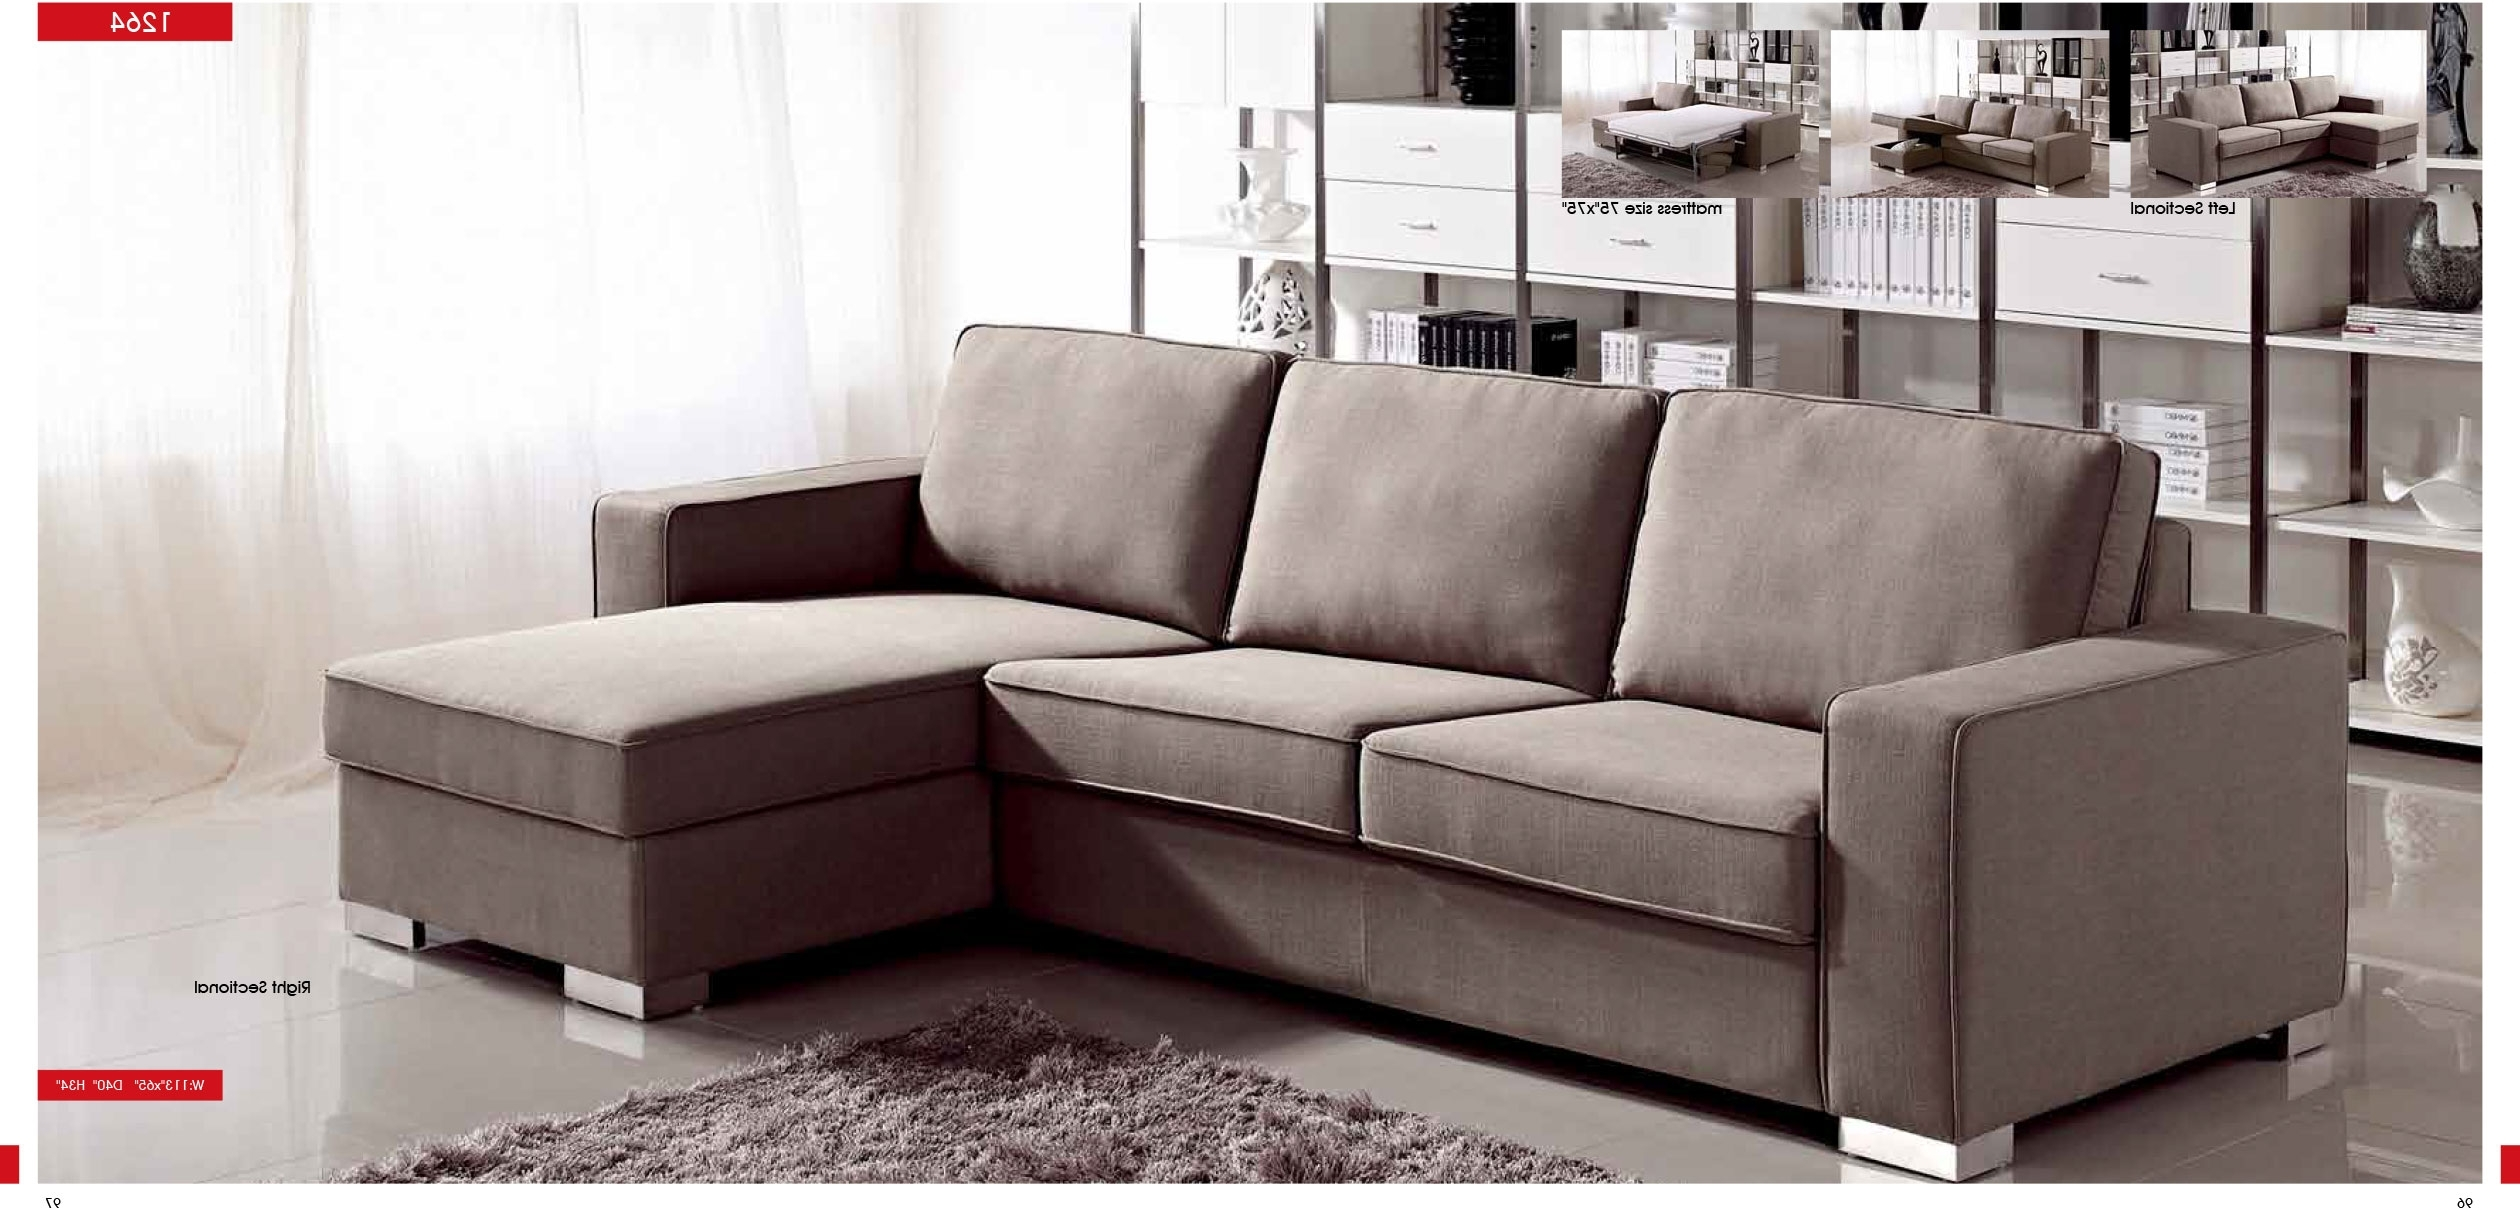 Well Liked Sectional Sofas In San Antonio Within Sectionals : Sa Furniture, San Antonio Furniture Of Texas (View 20 of 20)